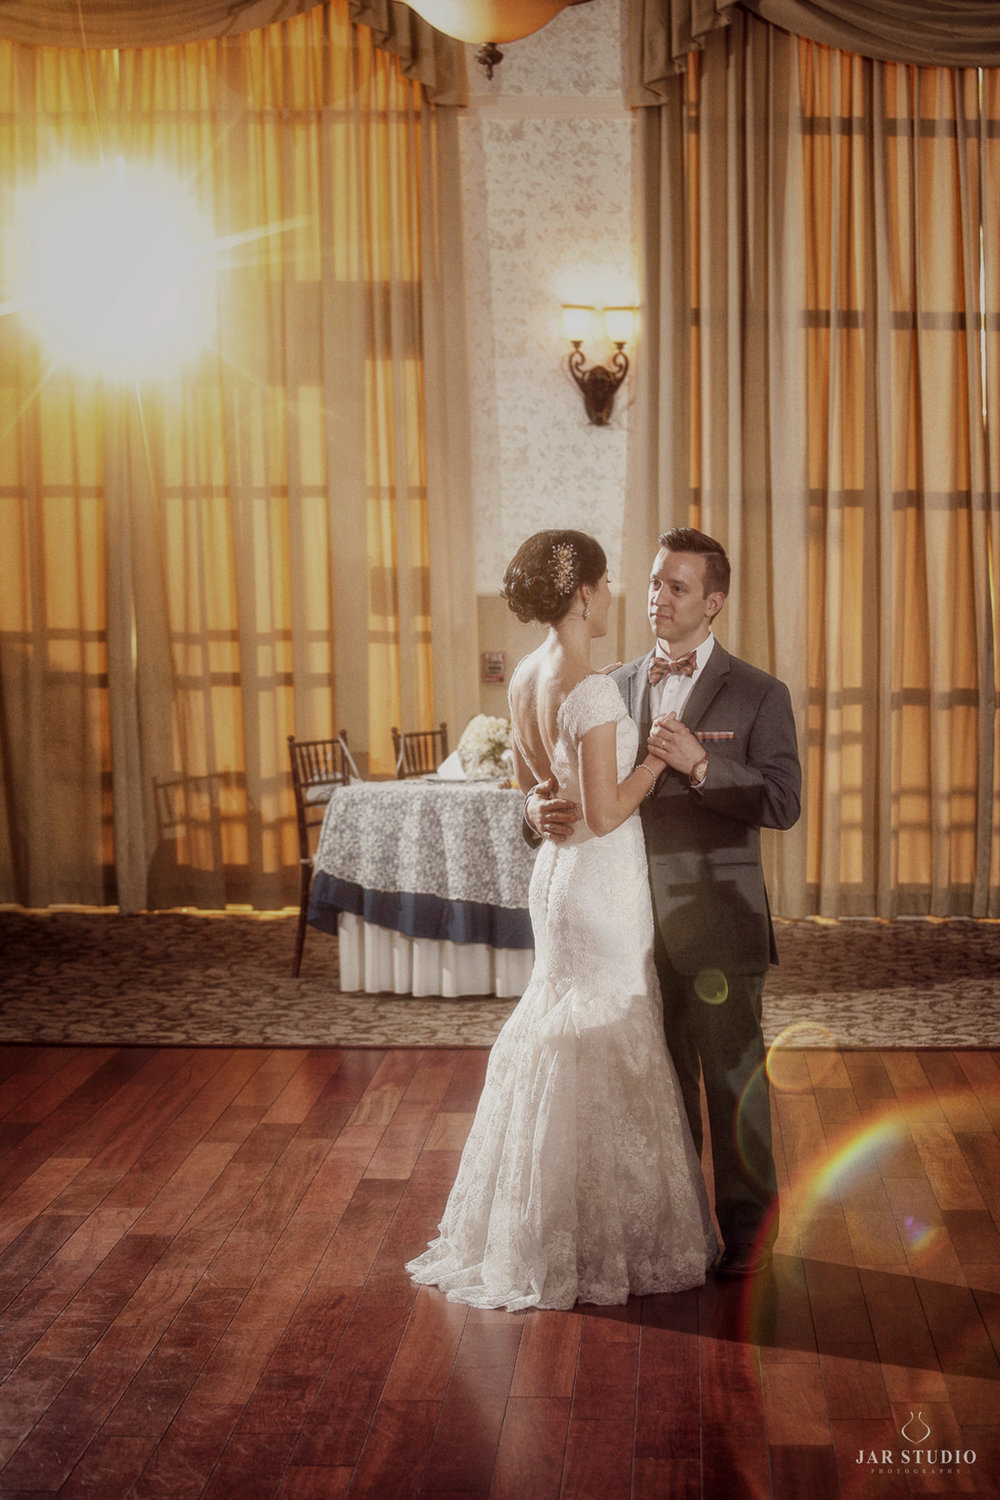 32-first-dance-lake-mary-events-center-reception-decoration-jarstudio-photography-the-best.JPG